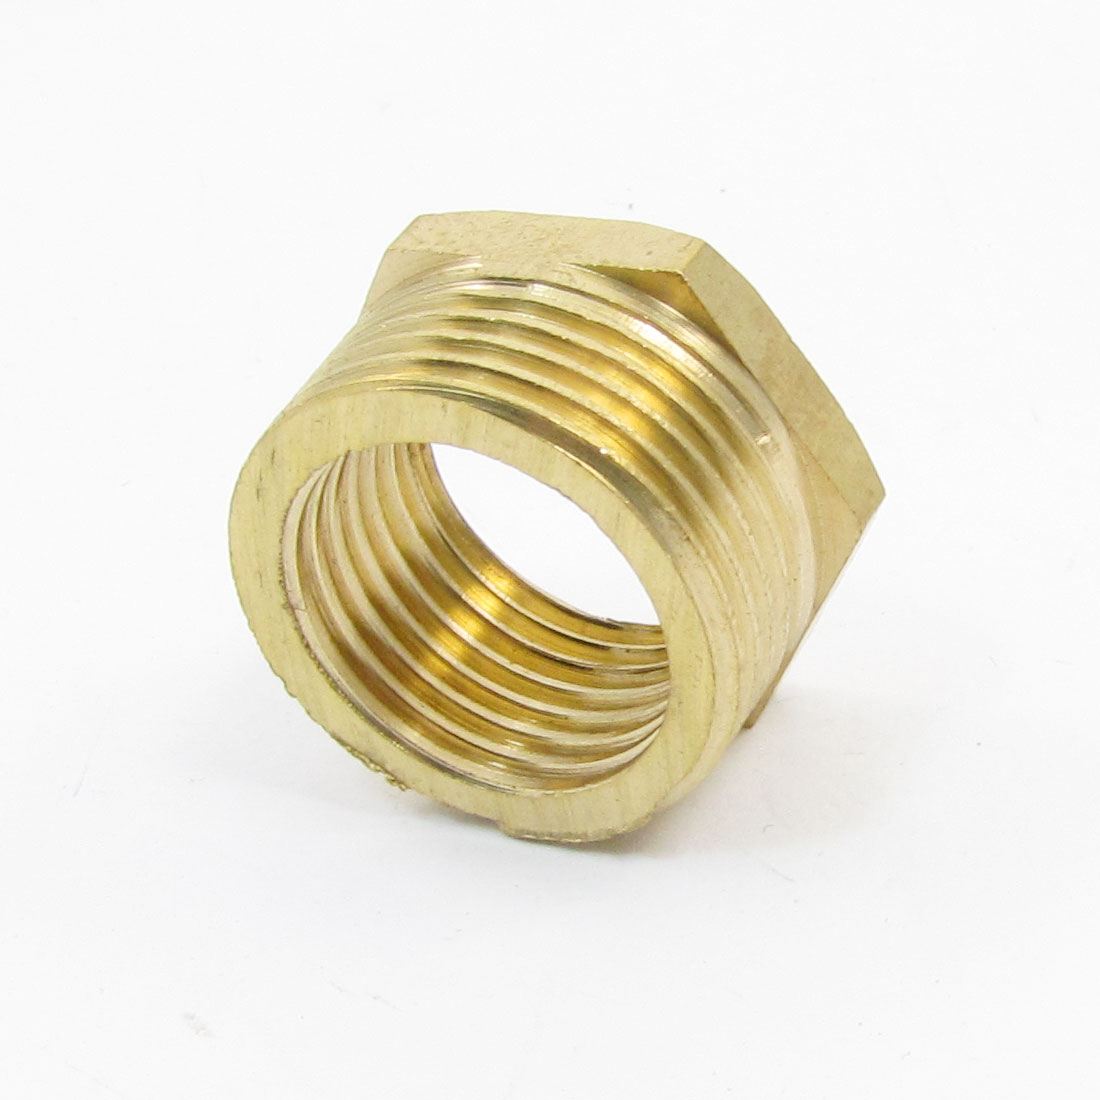 "3/4"" PT Male to 1/2"" PT Female Hex Threaded Bushing Piping Connector Adapter"